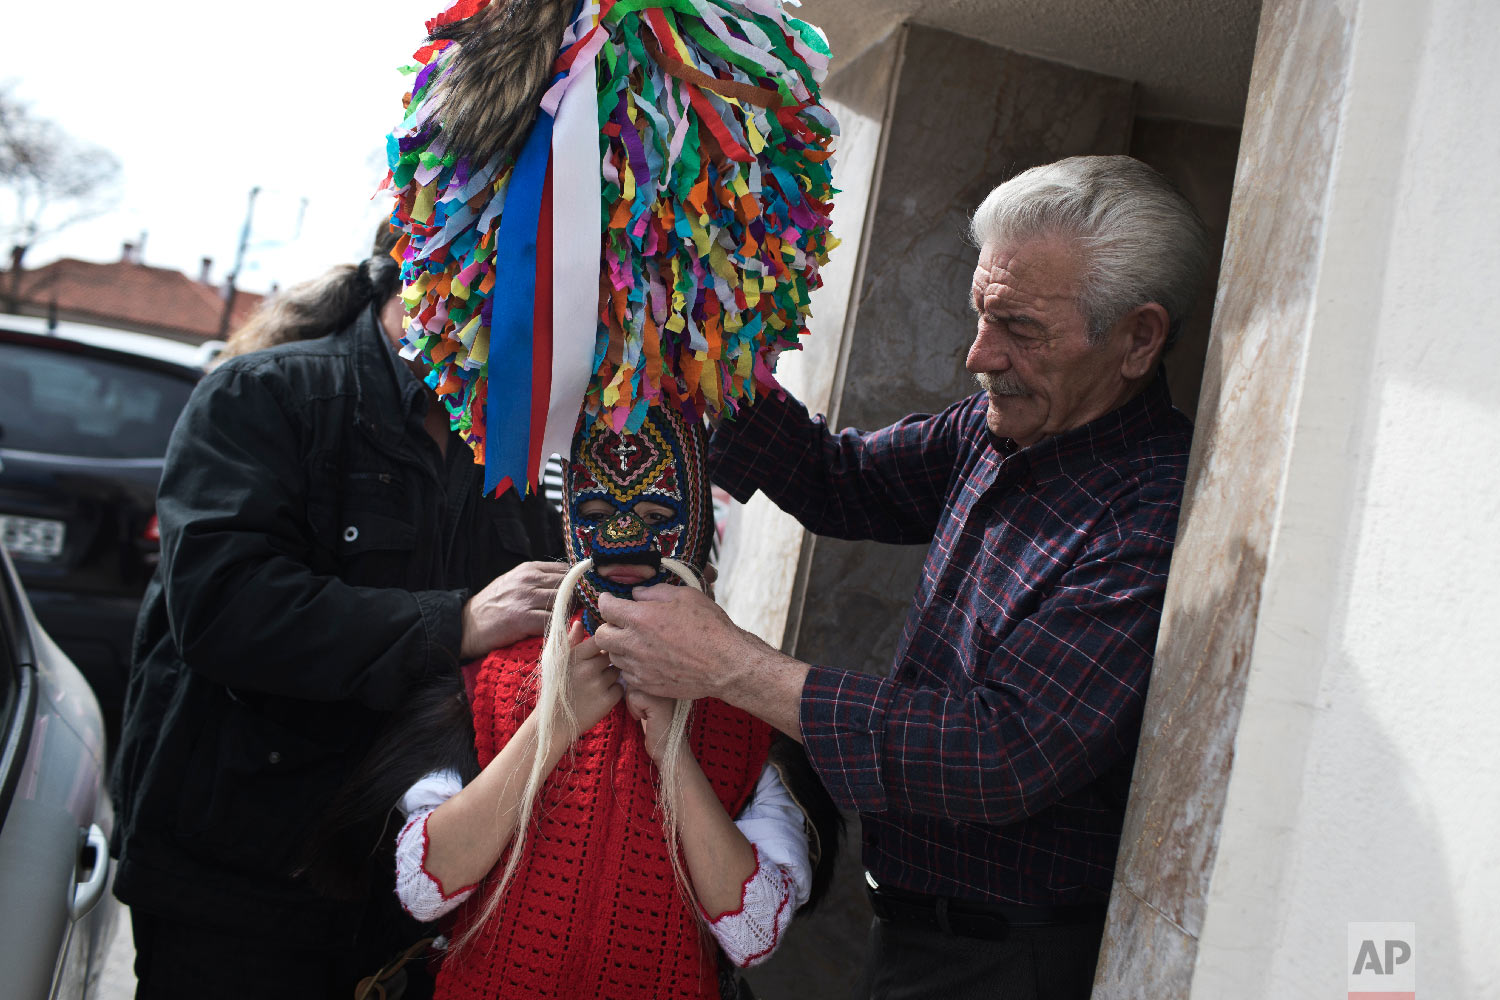 A grandfather helps a young bell wearer with the costume in the village of Sohos, northern Greece, to participate in a Clean Monday festival on March 11, 2019. (AP Photo/Petros Giannakouris)